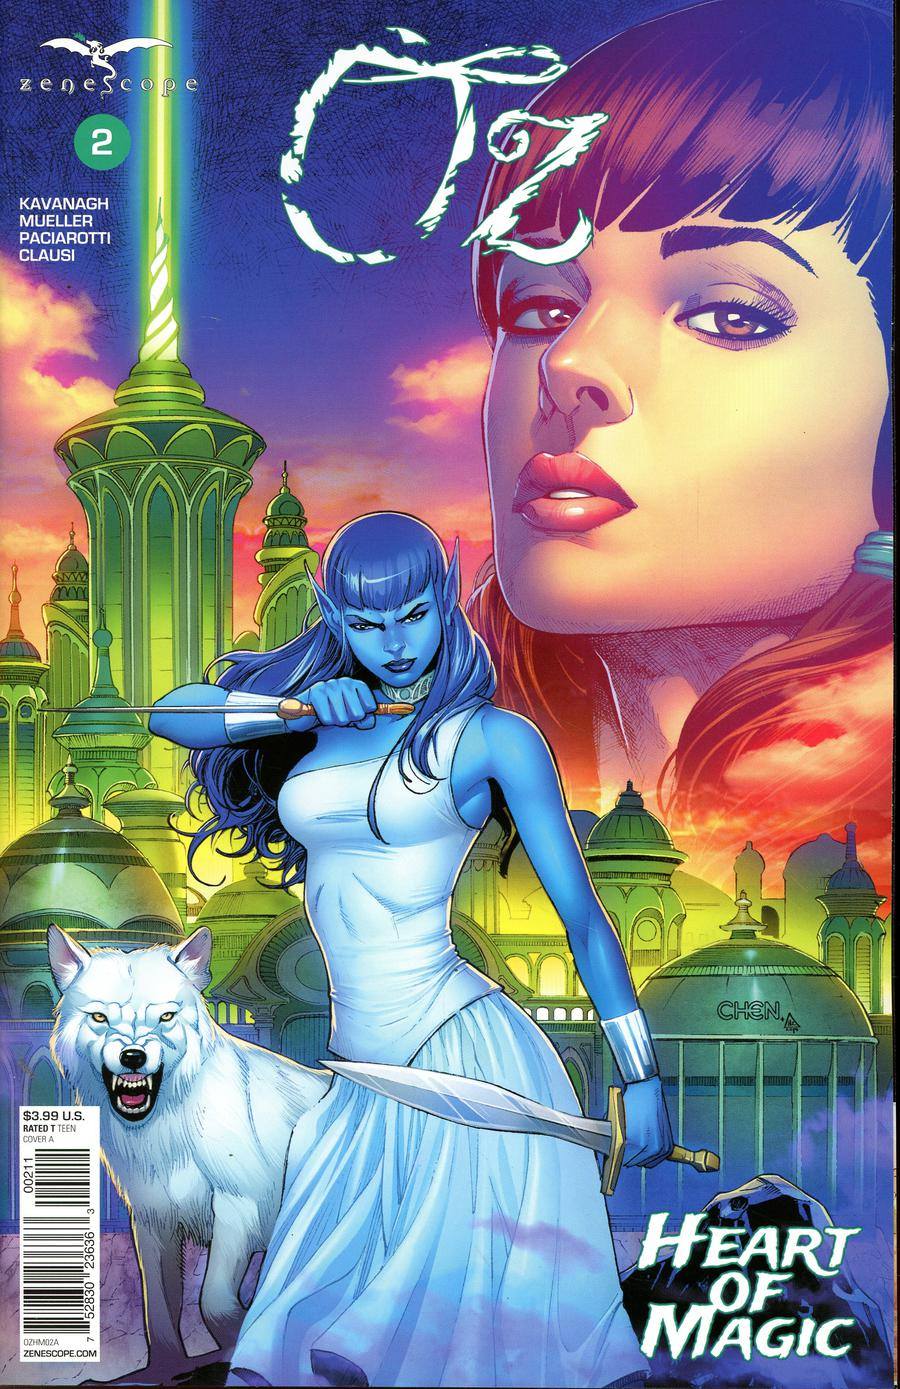 Grimm Fairy Tales Presents Oz Heart Of Magic #2 Cover A Sean Chen